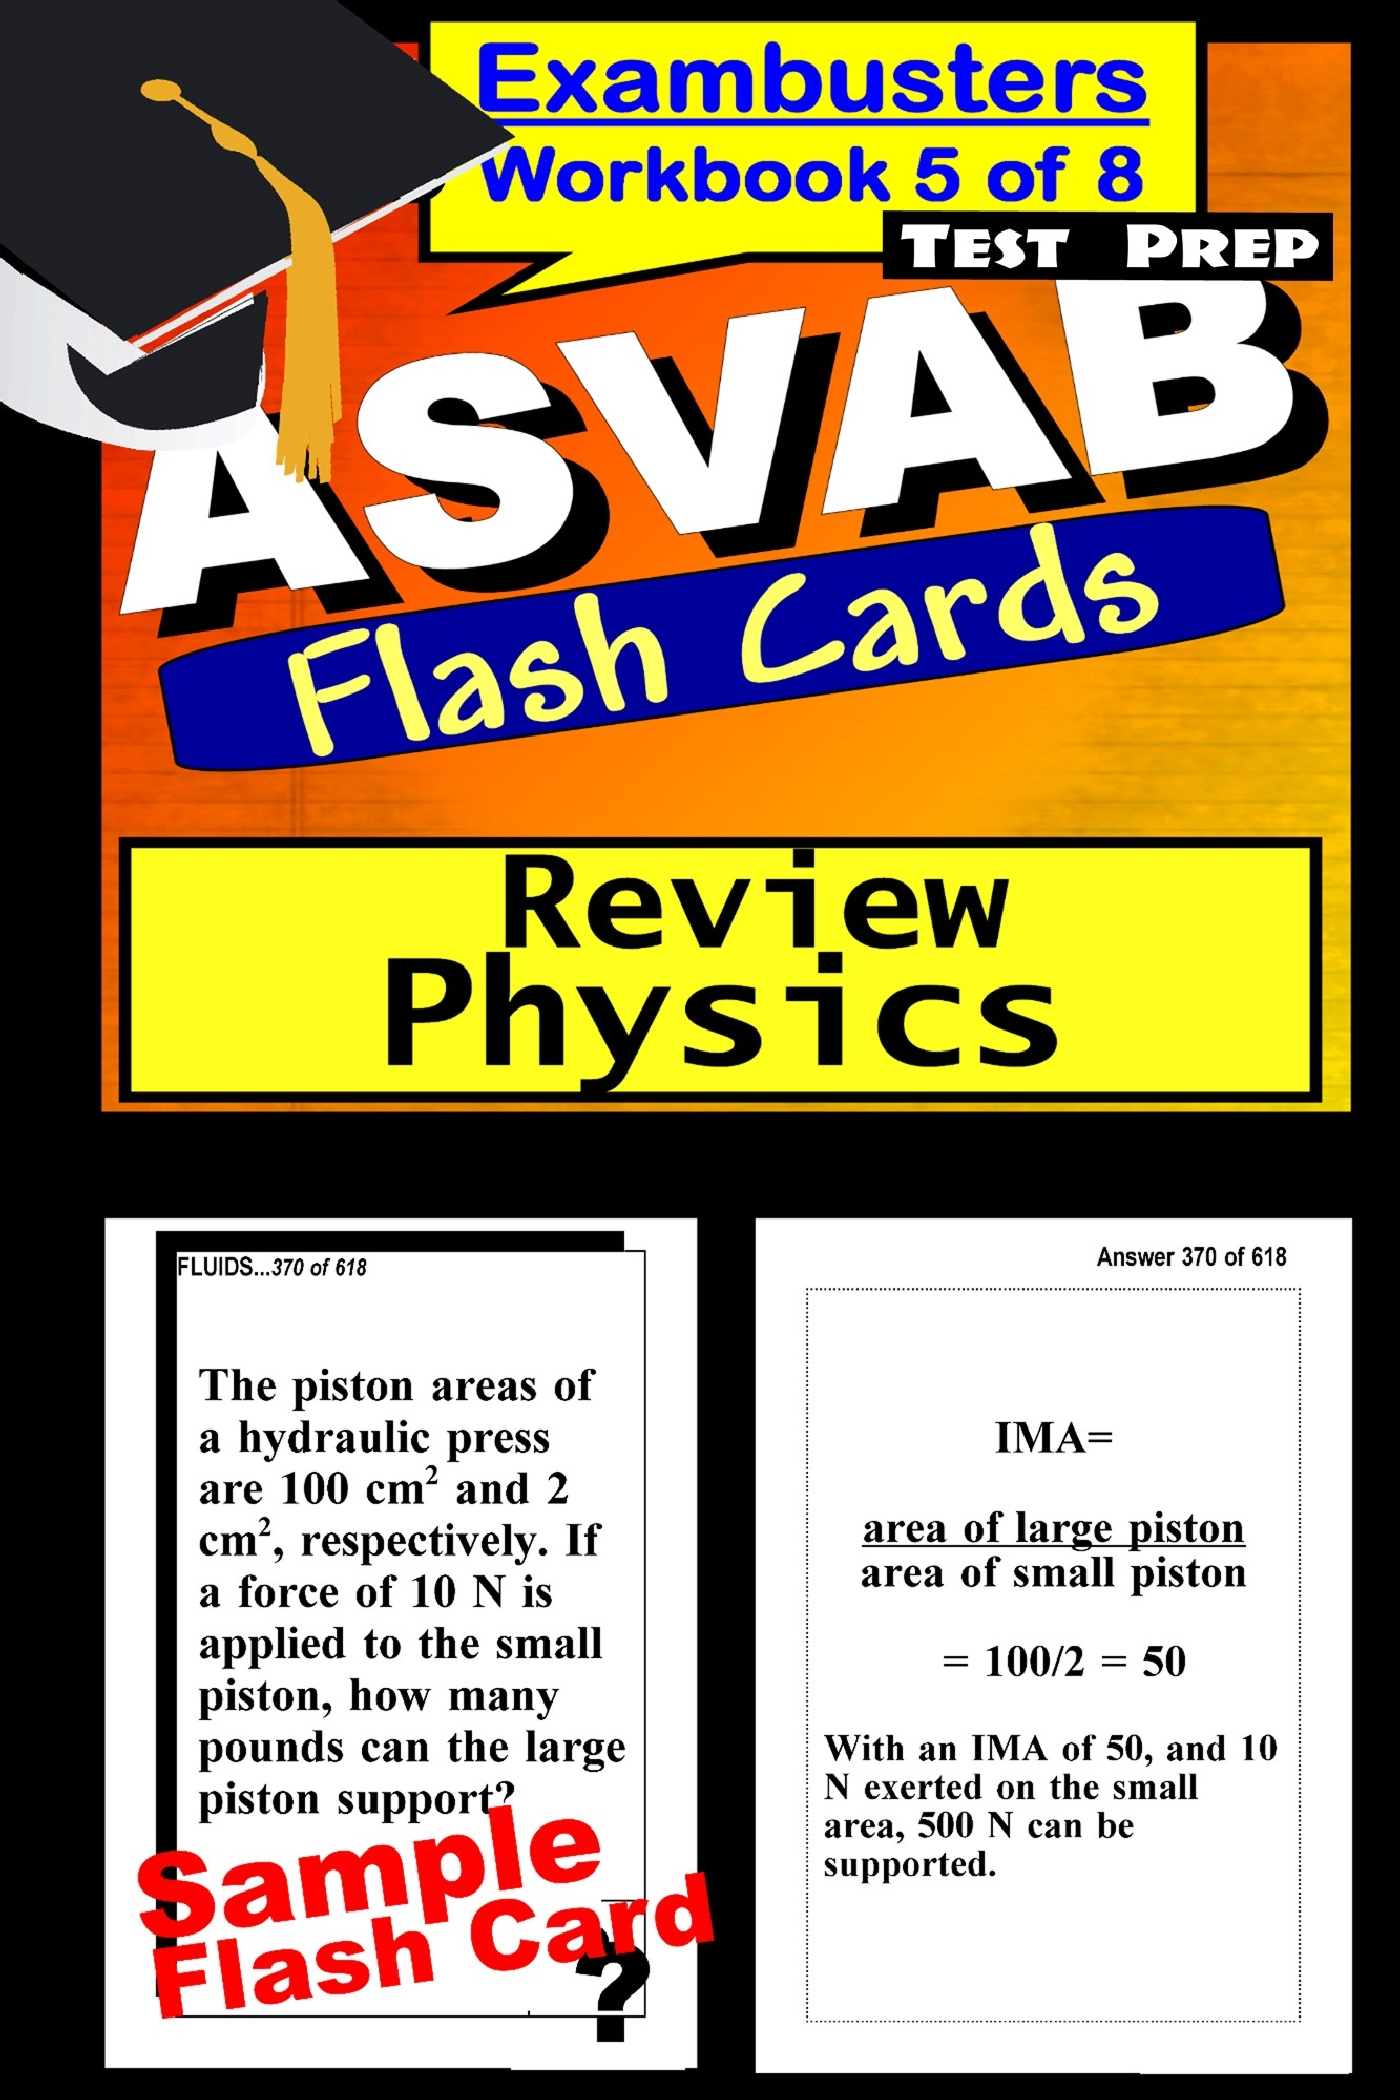 ASVAB Test Prep Physics Review--Exambusters Flash Cards--Workbook 5 of 8: ASVAB Exam Study Guide